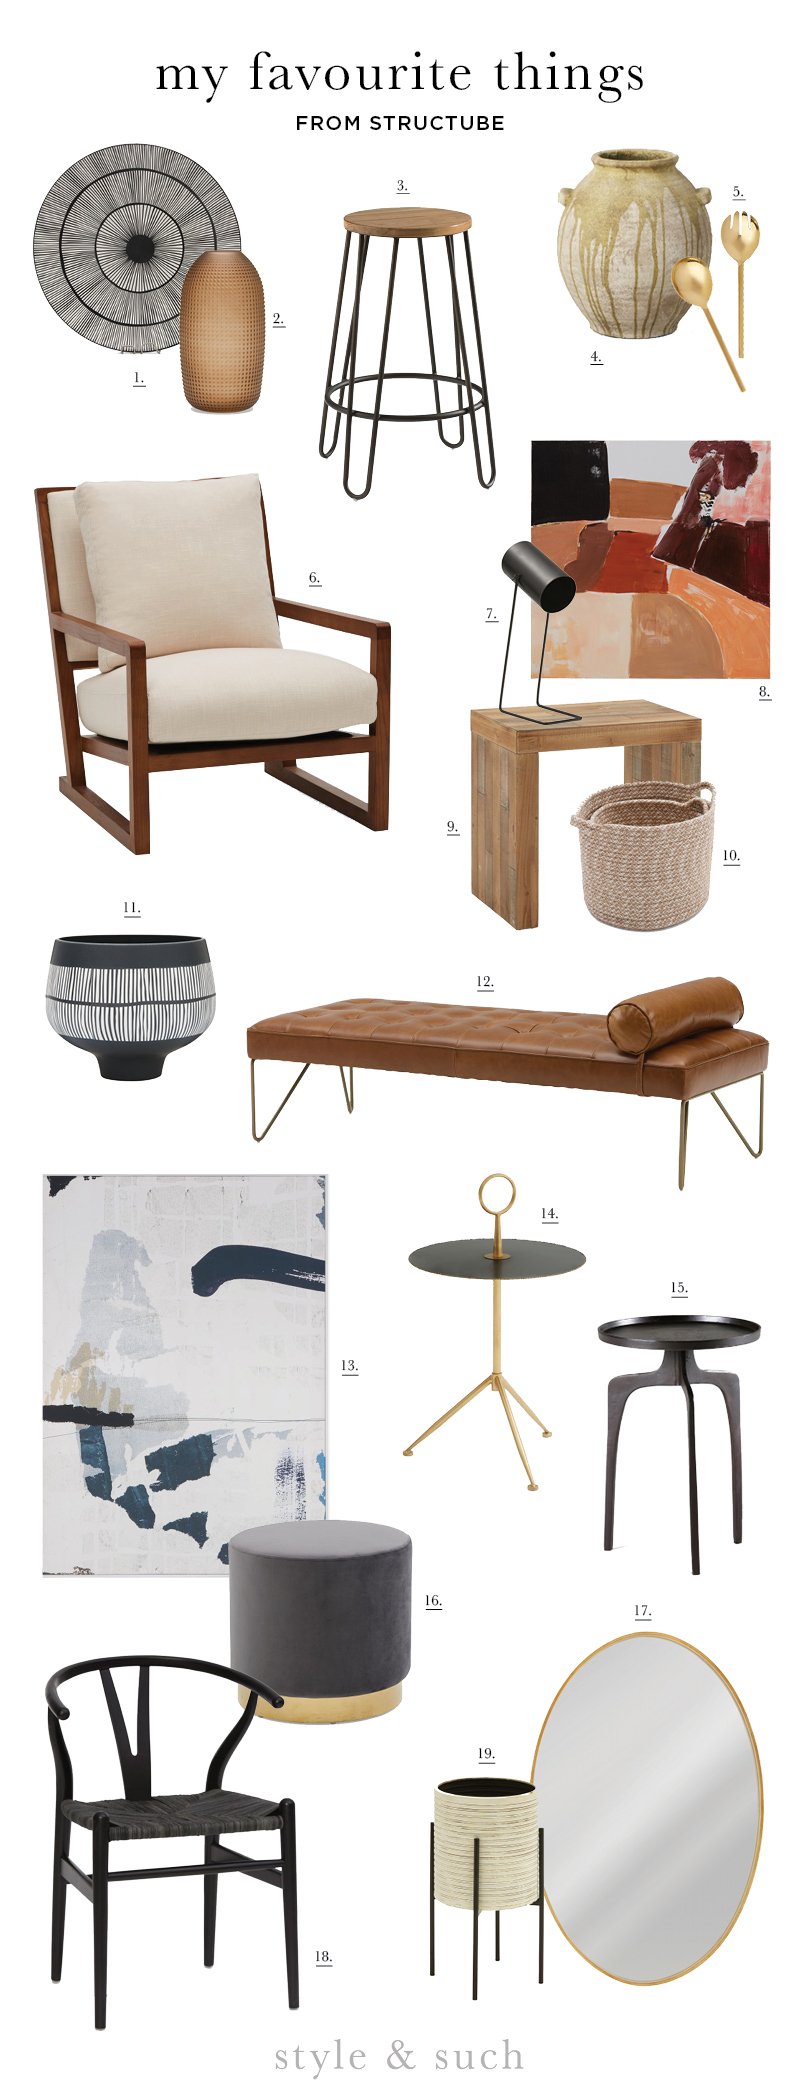 1.  Ceramic Serving Dish  | 2.  Glass Vase  | 3.  Lars Counter Stool  | 4.  Cement Vase  | 5.  Salad Serveware  | 6.  Teak Armchair  | 7.  Arta Table Lamp  | 8.  Shira Wall Art  | 9.  Samia End Table  | 10.  Woven Basket  | 11.  Ceramic Bowl  | 12.  Leather Day Bed  | 13.  Tessi Wall Art  | 14.  Clichy Accent Table  | 15.  Steel End Table  | 16.  Velvet Ottoman  | 17.  Noda Oval Mirror  | 18.  Denmark Dining Chair  | 19.  Banya Planter